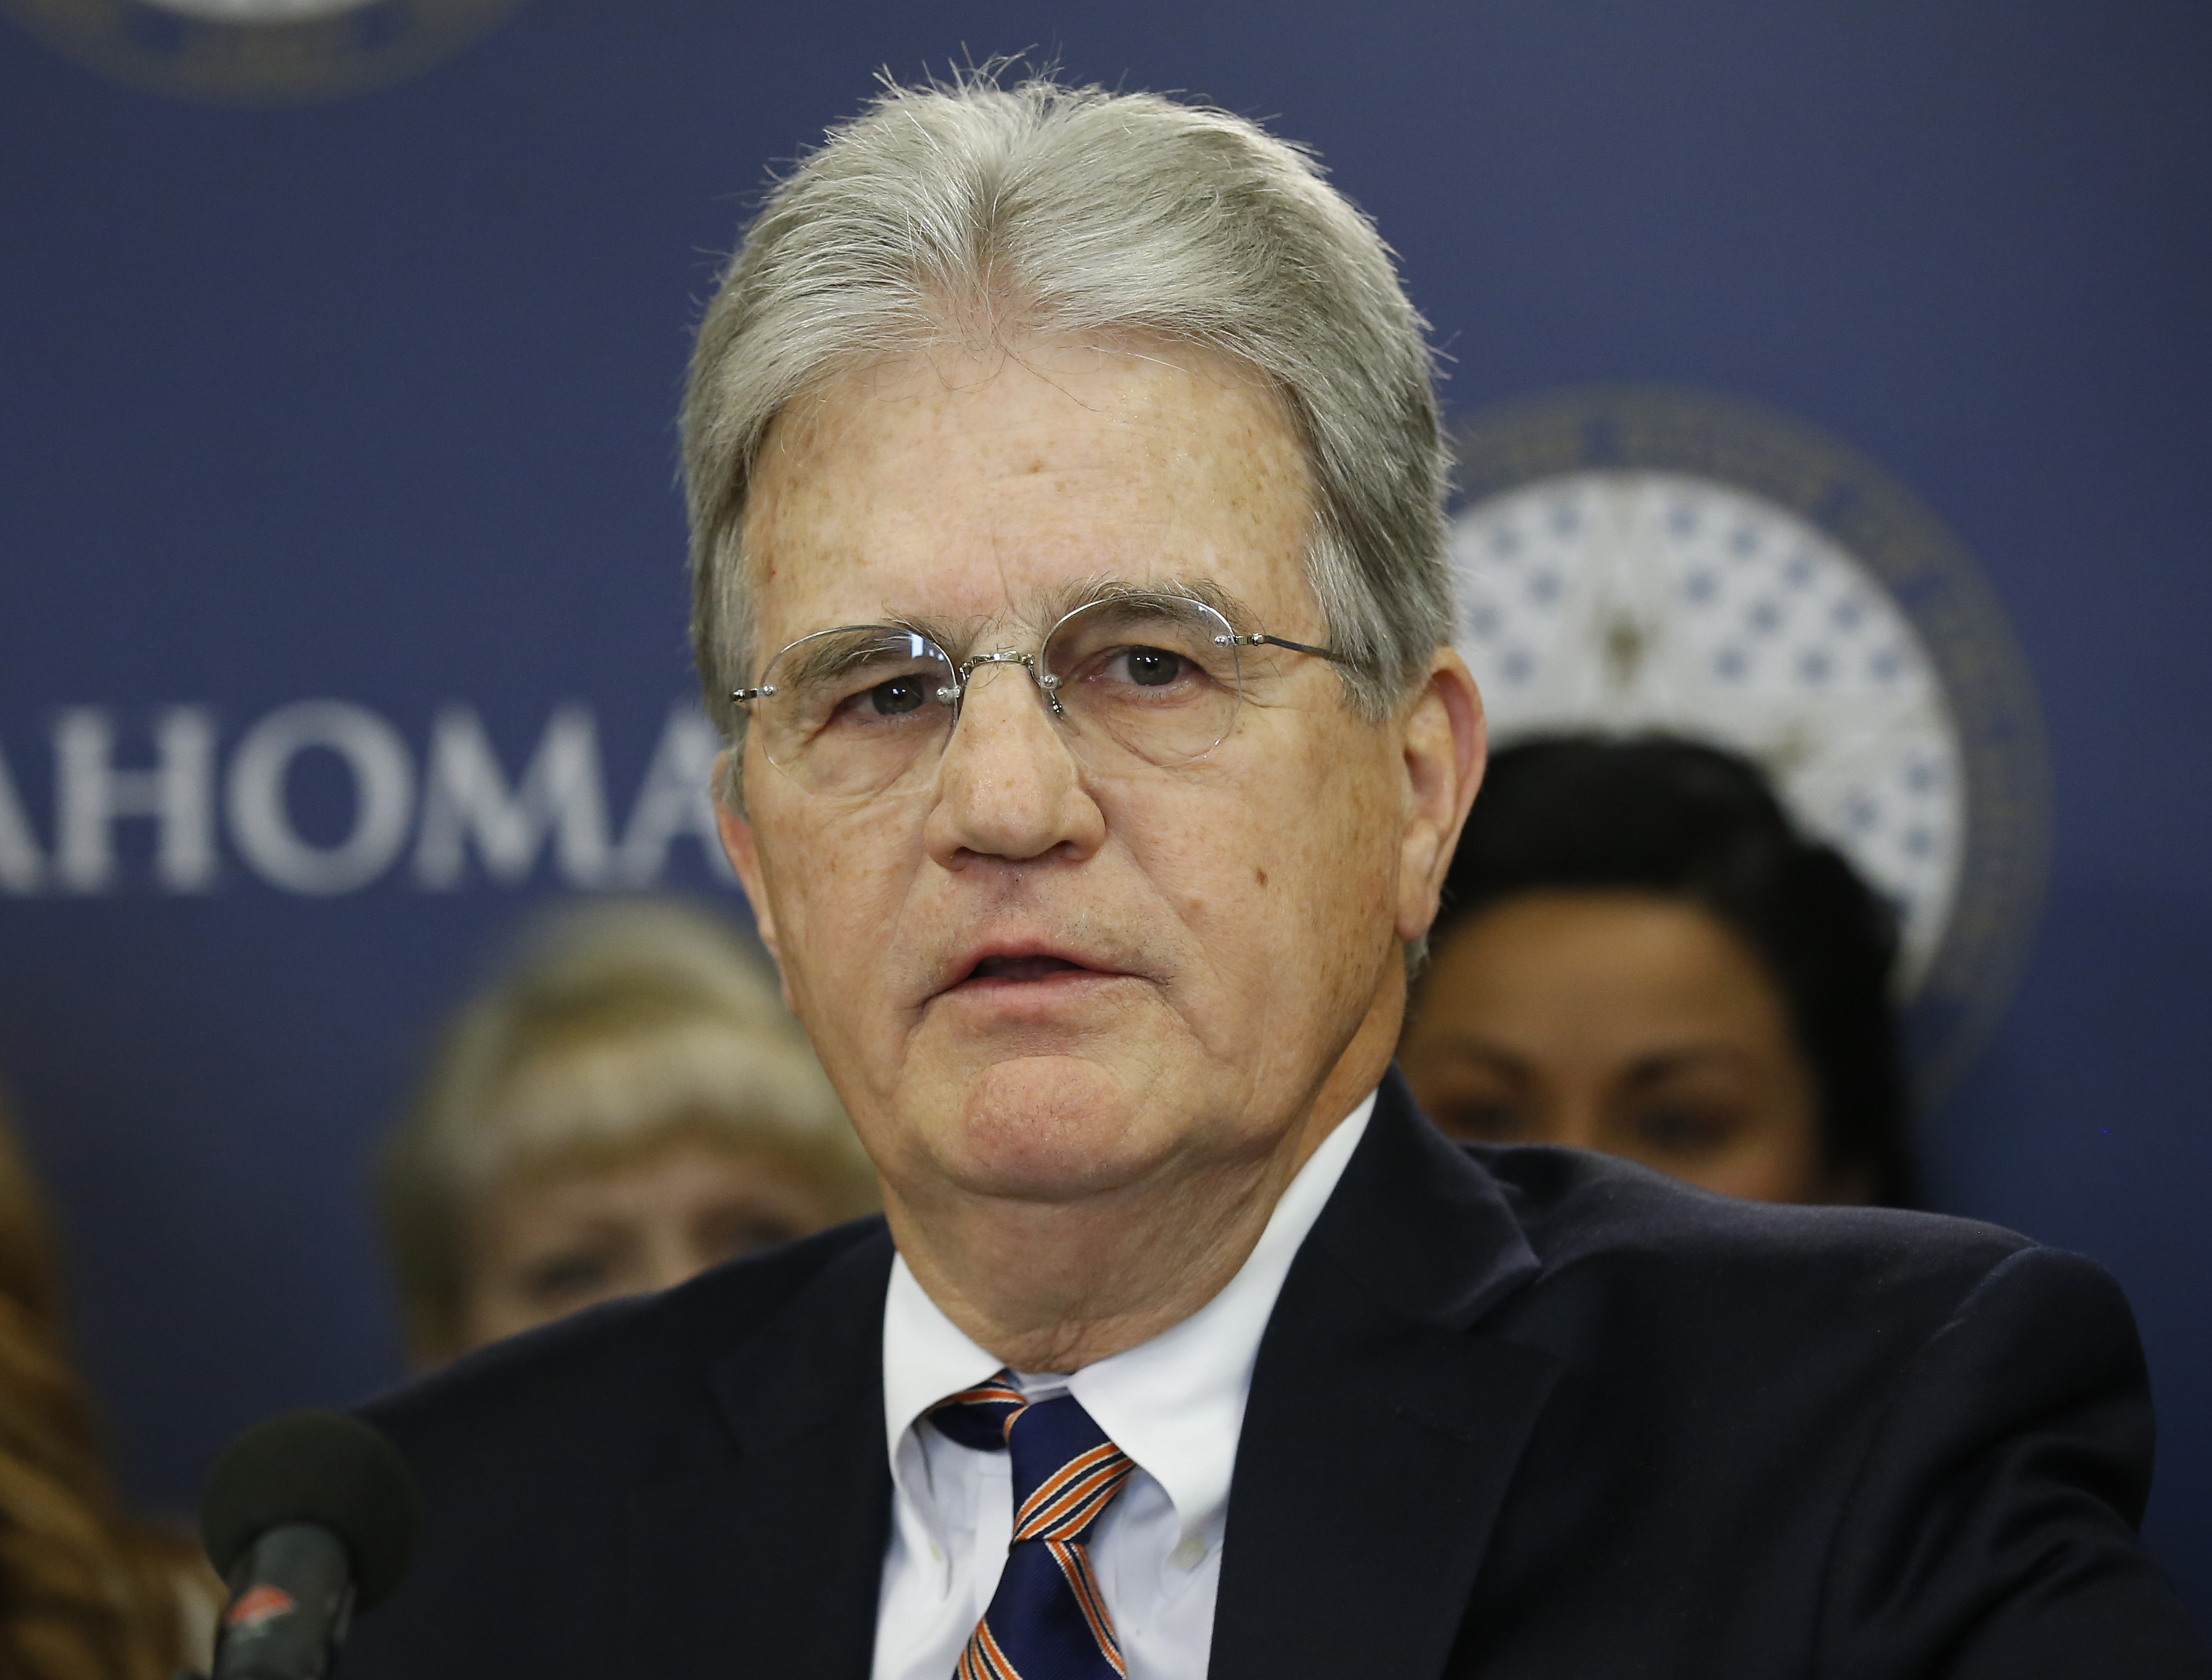 Former U.S. Sen. Tom Coburn speaks at a news conference in Oklahoma City, Okla., on March 28, 2018.